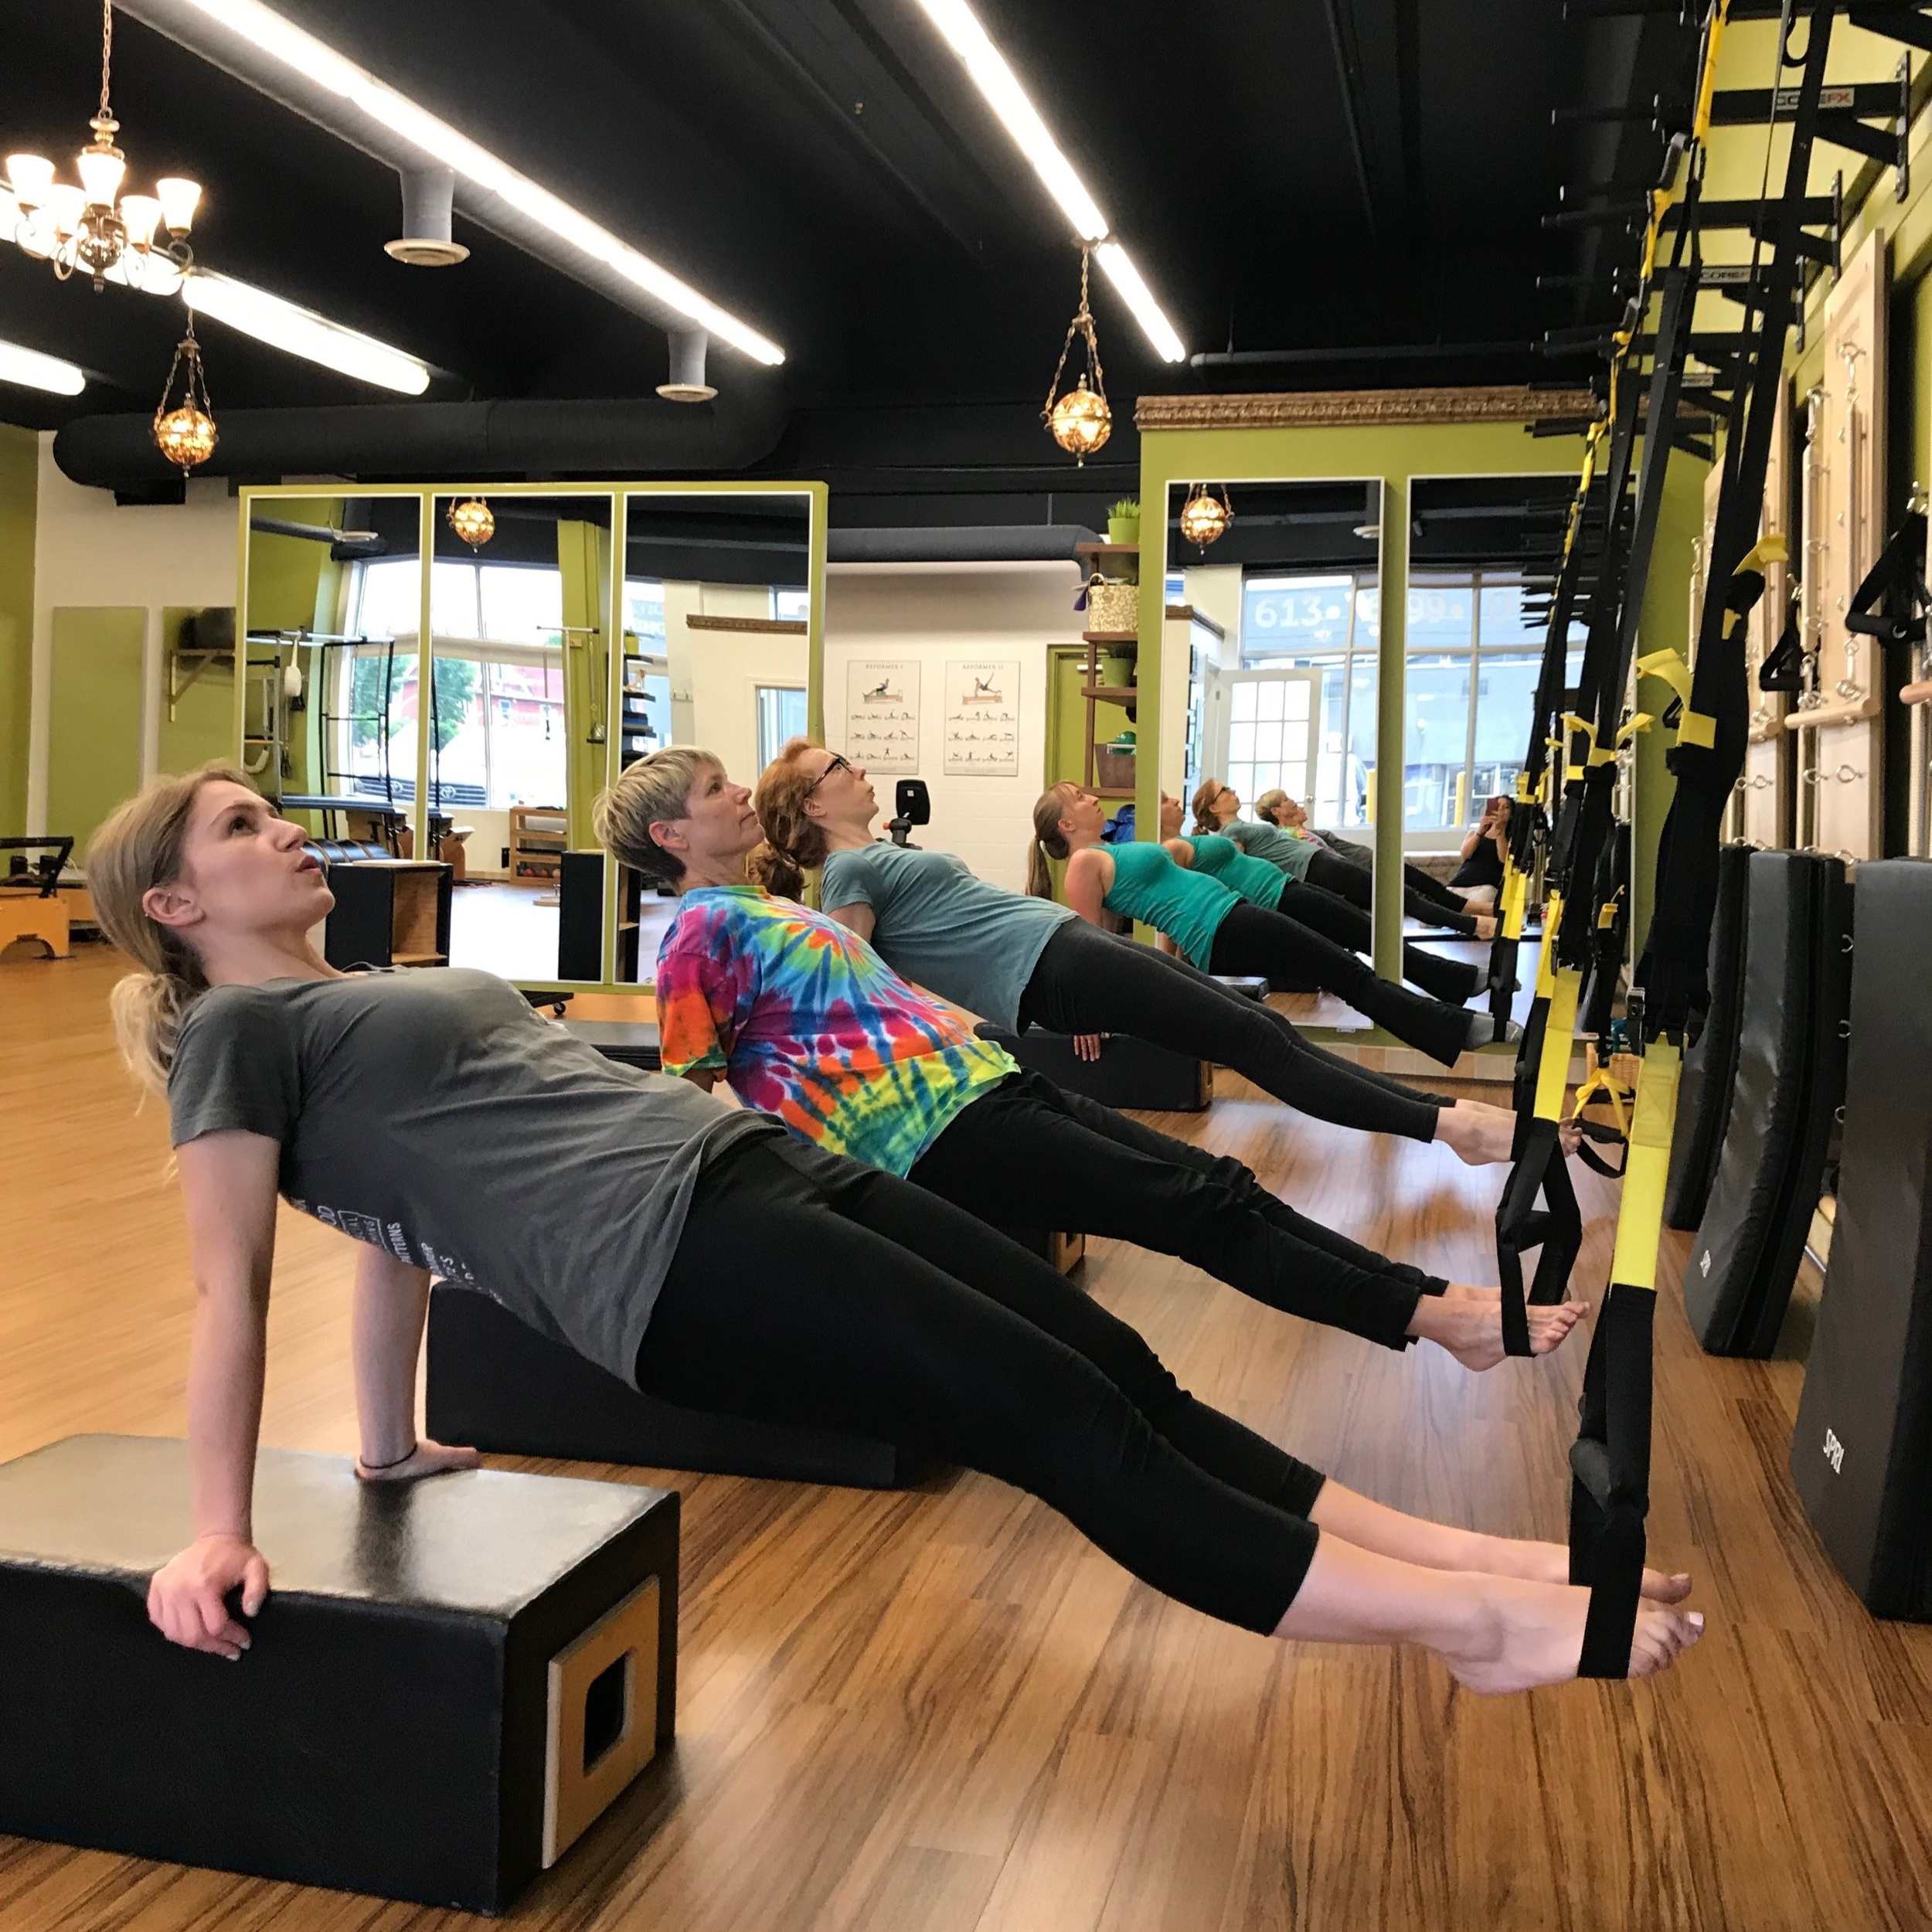 - PILATES ON THE TRXThis class adds challenge and thrill to your regular Pilates workout. Doing Pilates using the TRX suspension system helps develop strength, balance, flexibility and core stability by using gravity and body weight to build resistance. Open to all levels.